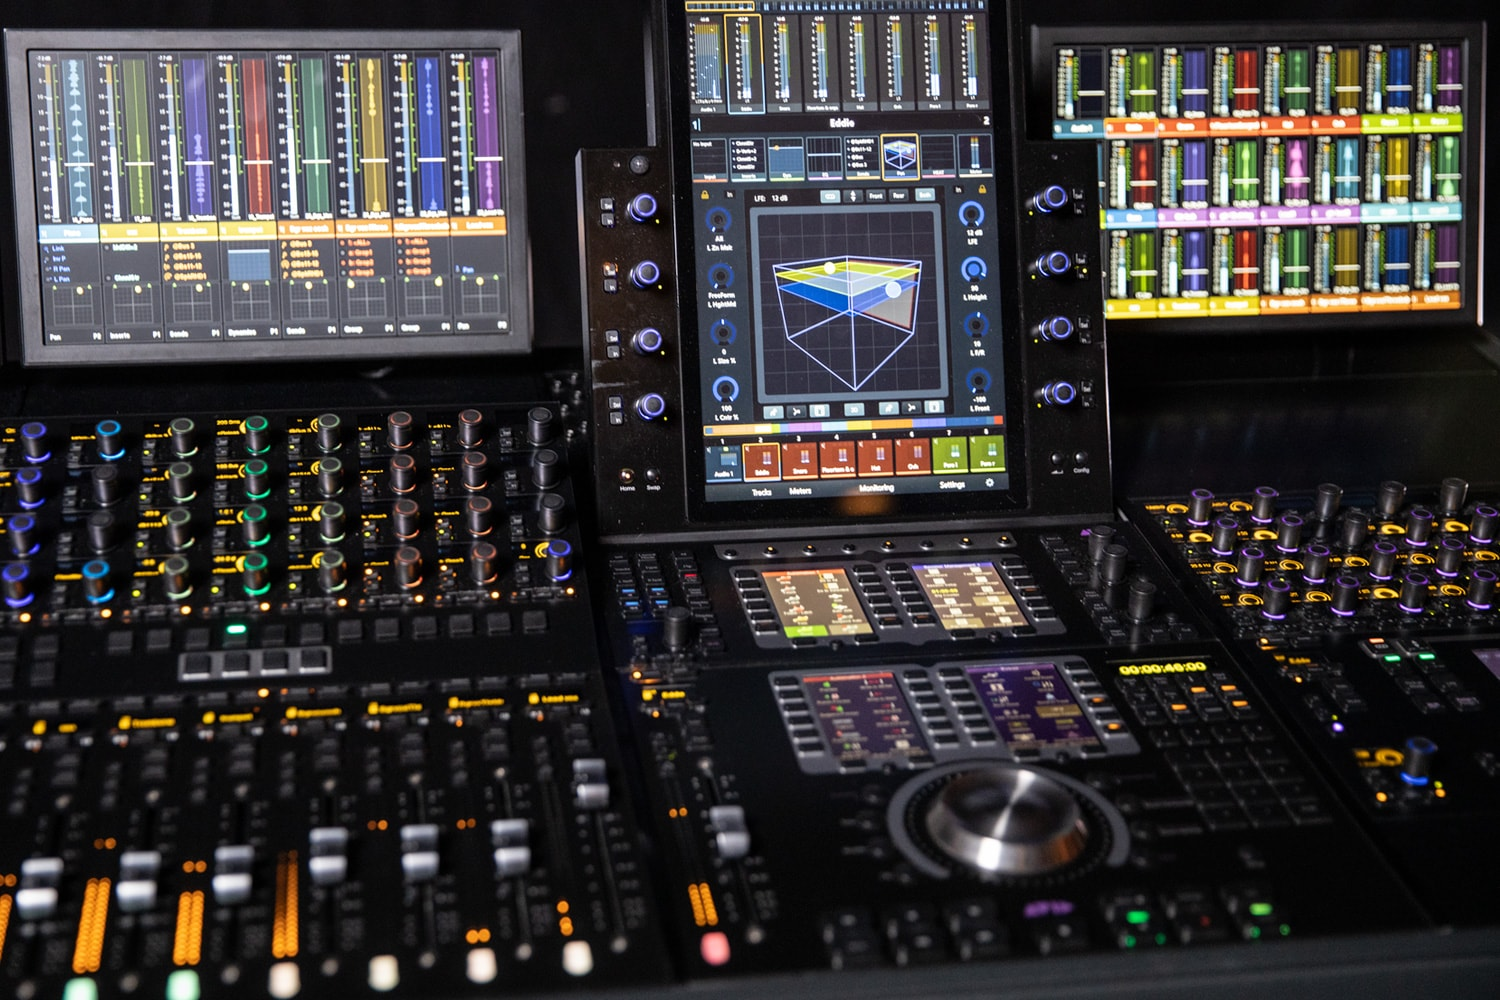 Gain better insight into your mix